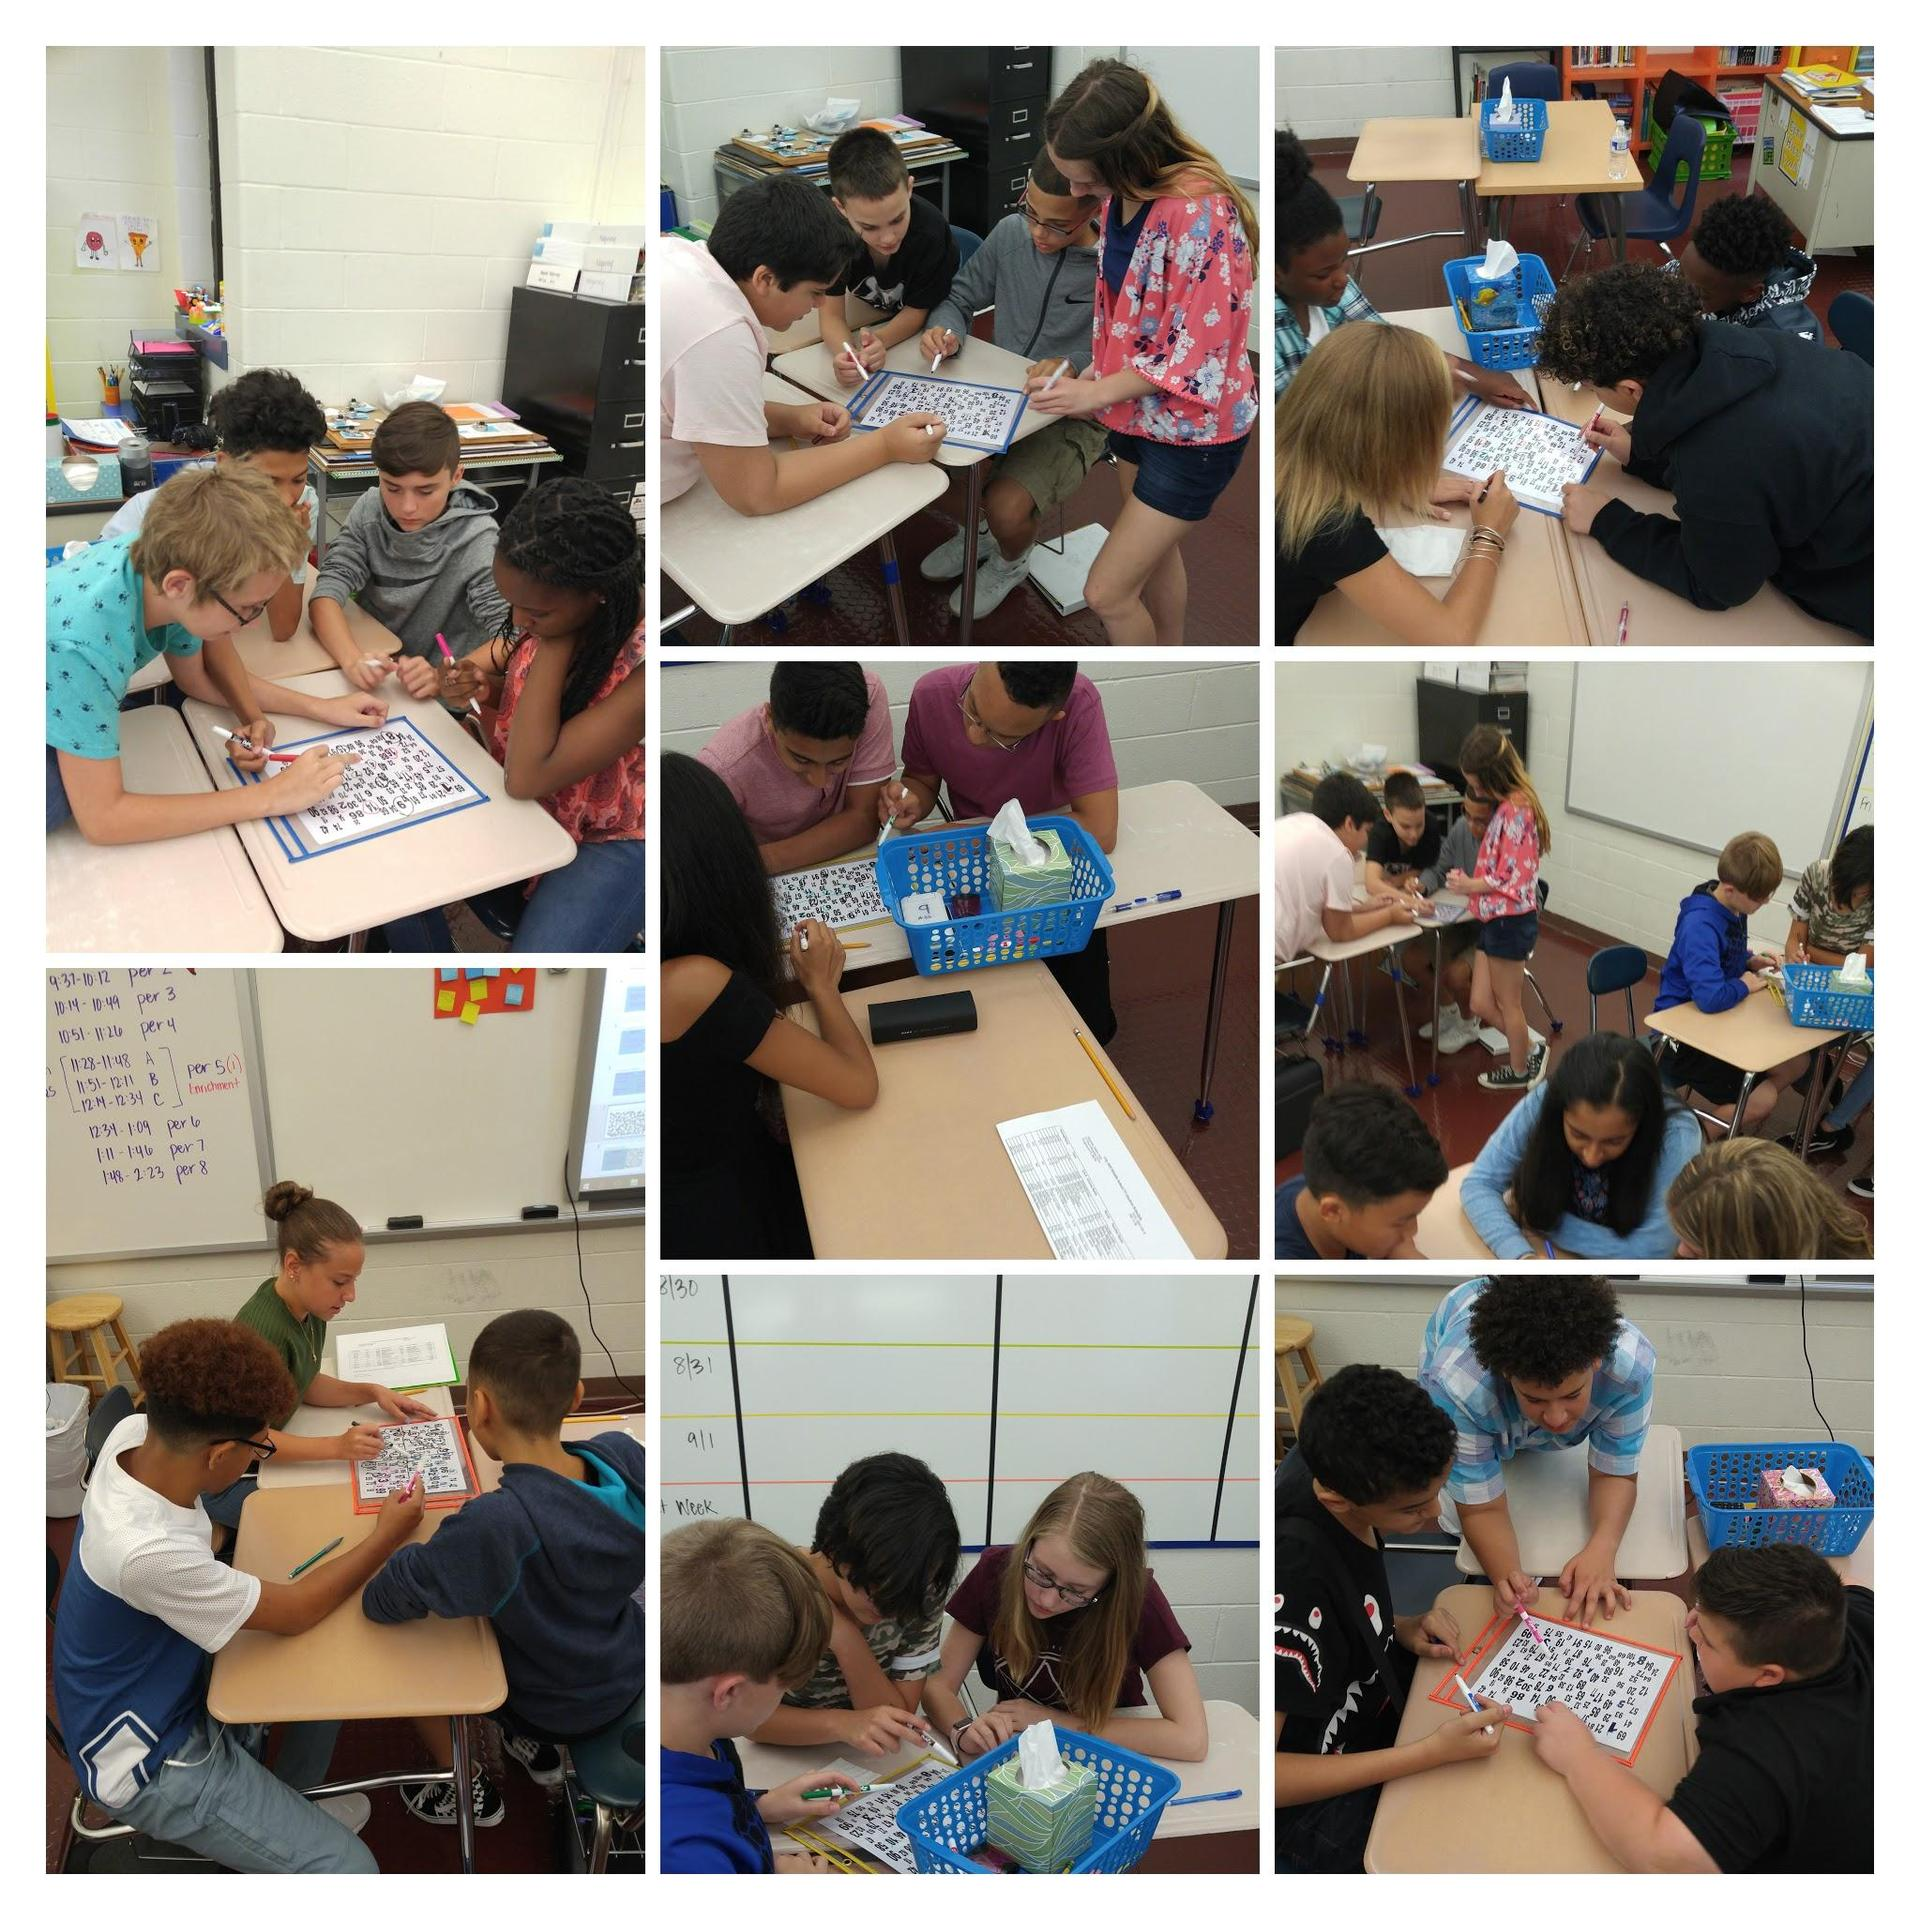 Collage of photos showing students working in groups